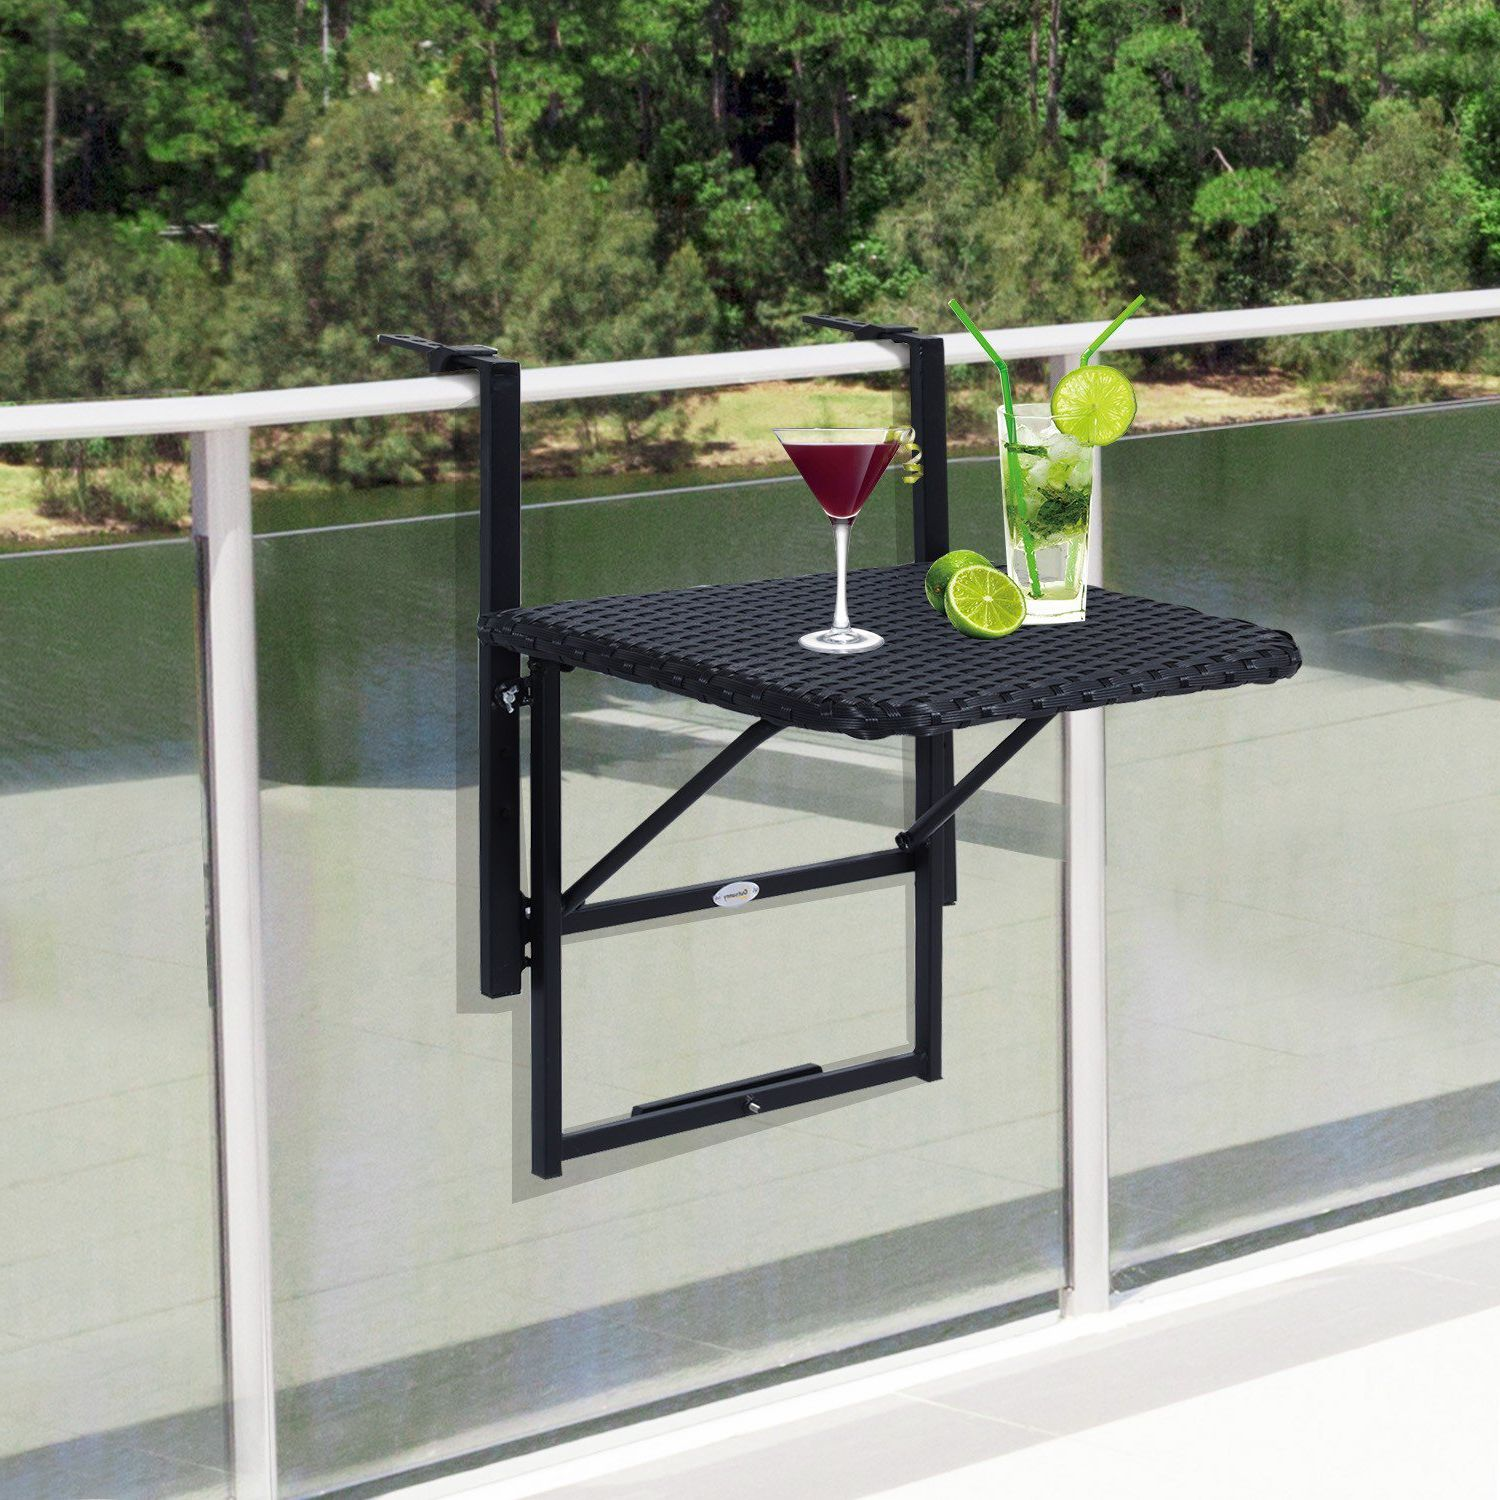 Folding Deck Rail Table Outsunny Outdoor Mounting | Balcones